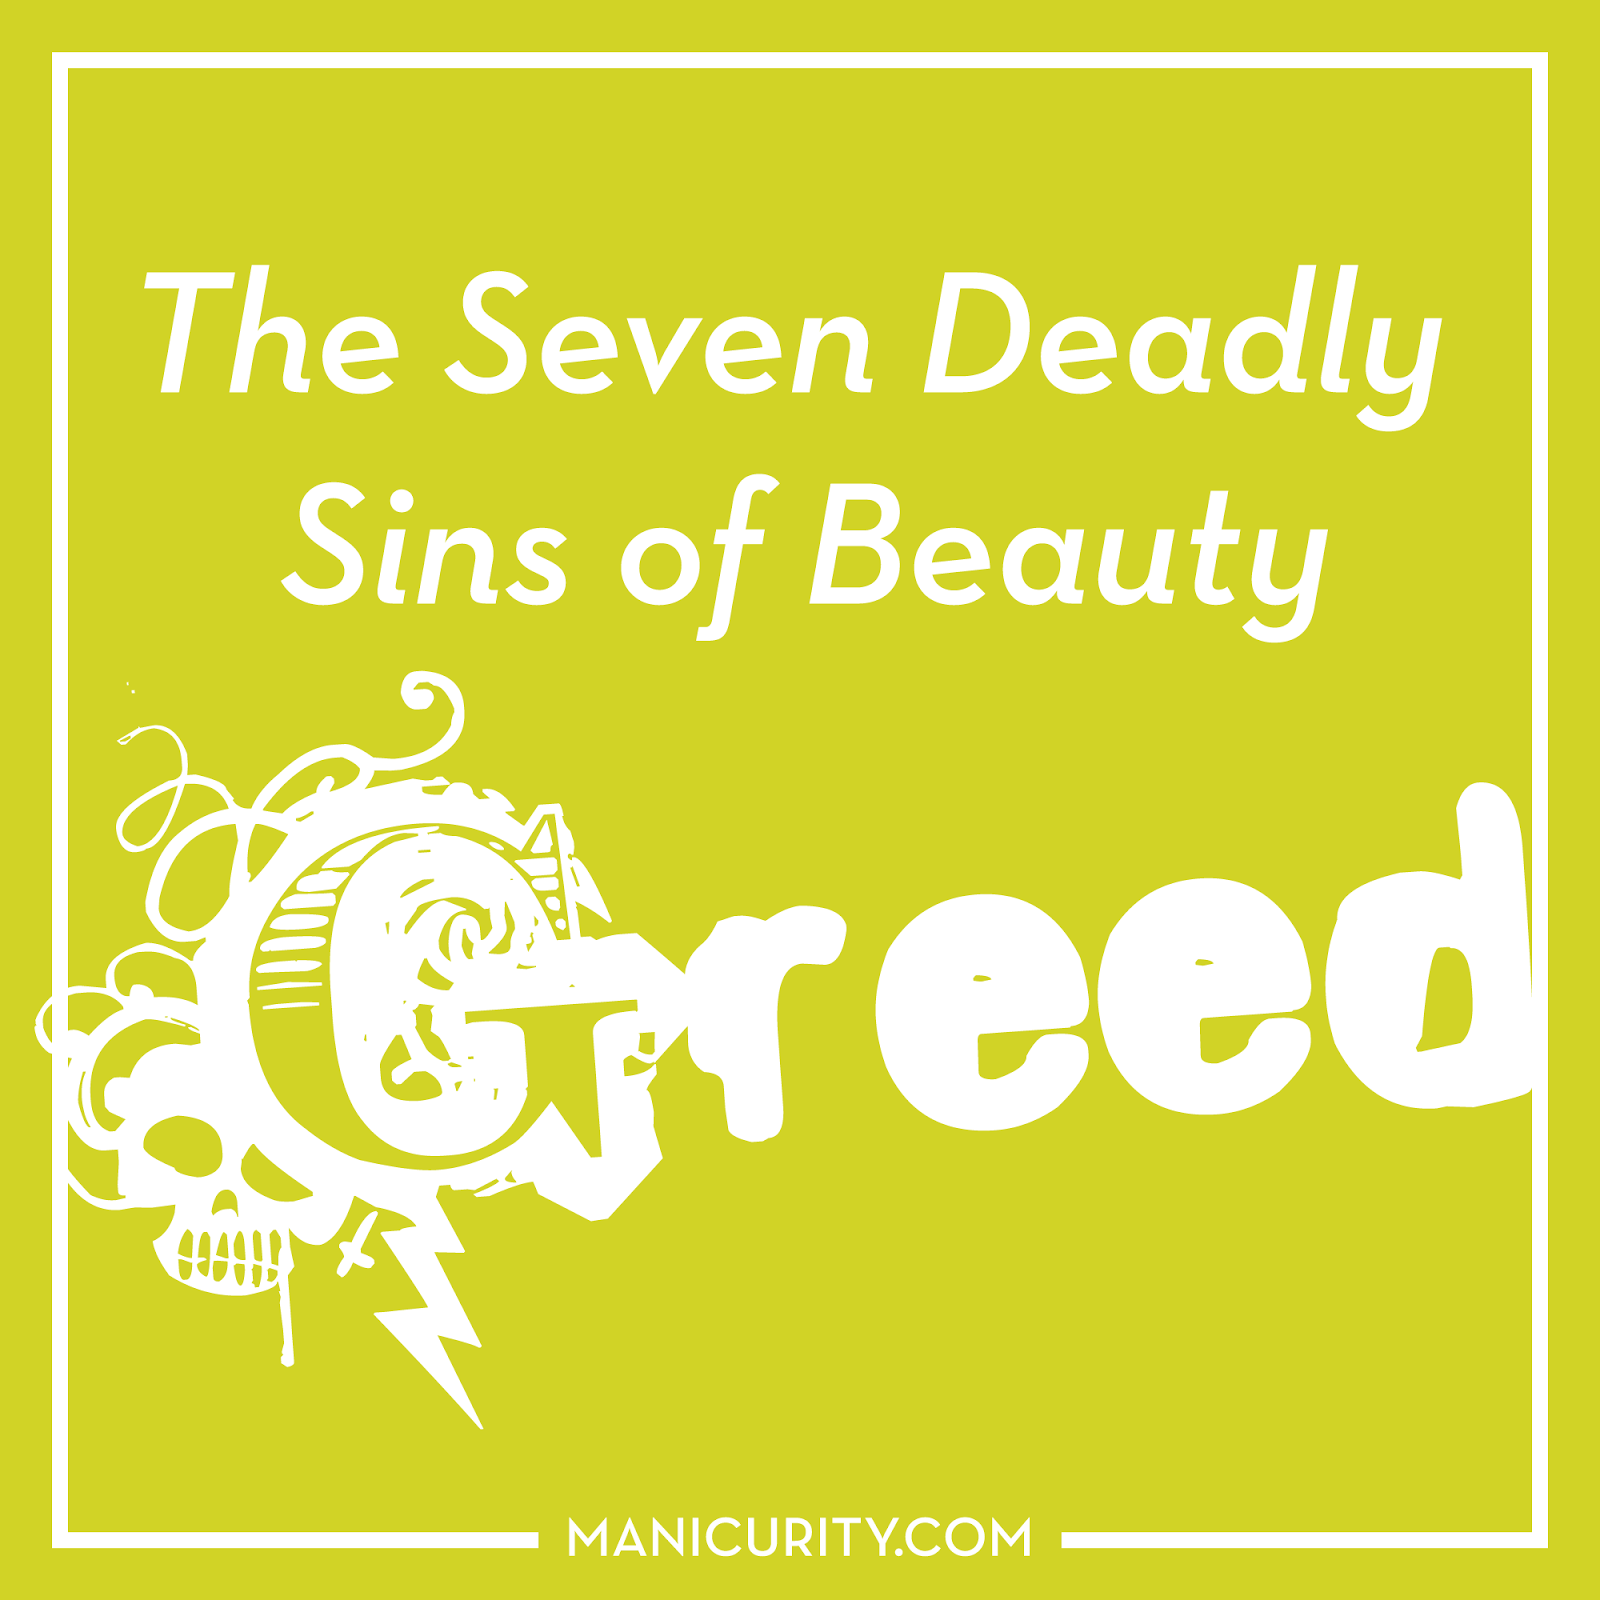 The Seven Deadly Sins of Beauty Tag - GREED! Manicurity's favorite high end (Hourglass) and low end products (Wet n' Wild) - and her most expensive HTF polish, too! | Manicurity.com